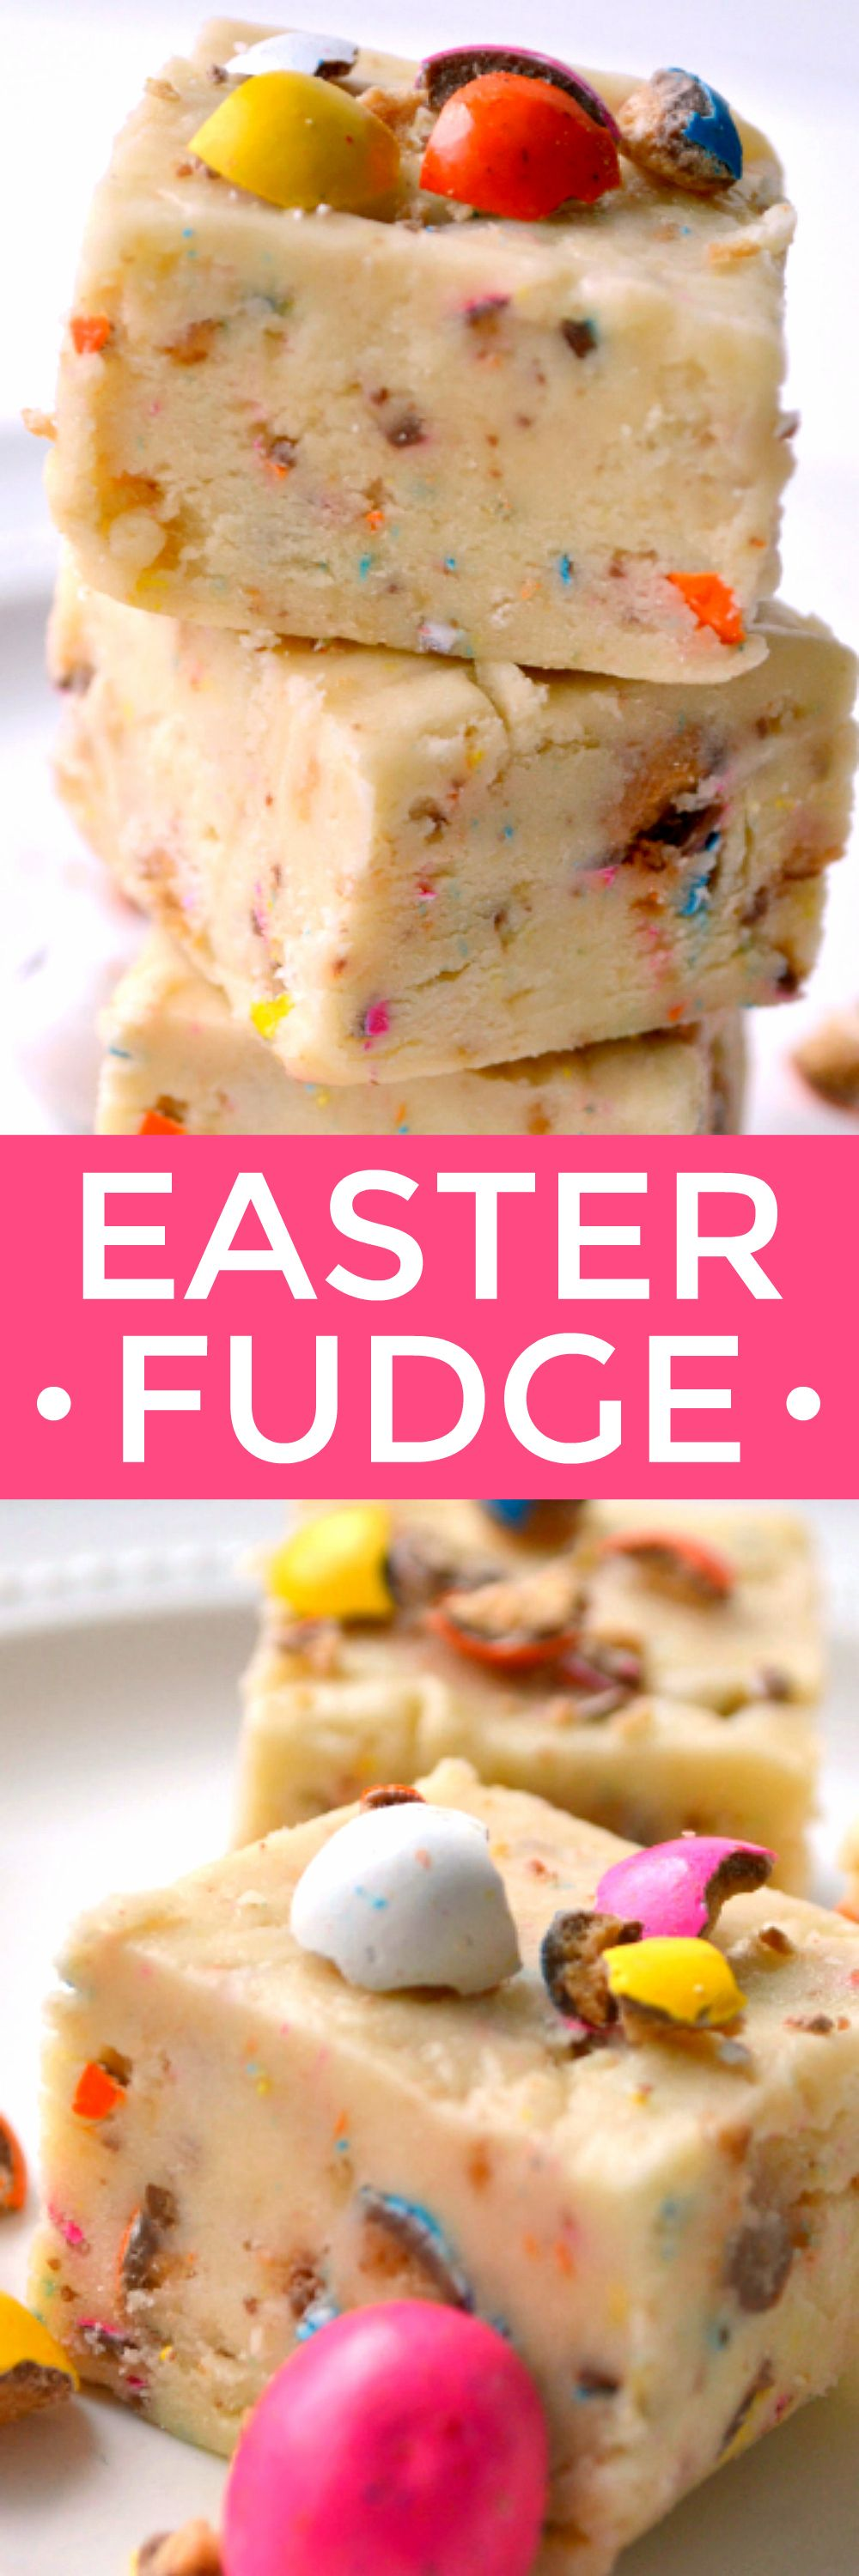 This Easter Fudge is loaded with malted milk balls and so fun for Easter! It comes together easily with no cooking required....the perfect Easter (or anytime) treat!